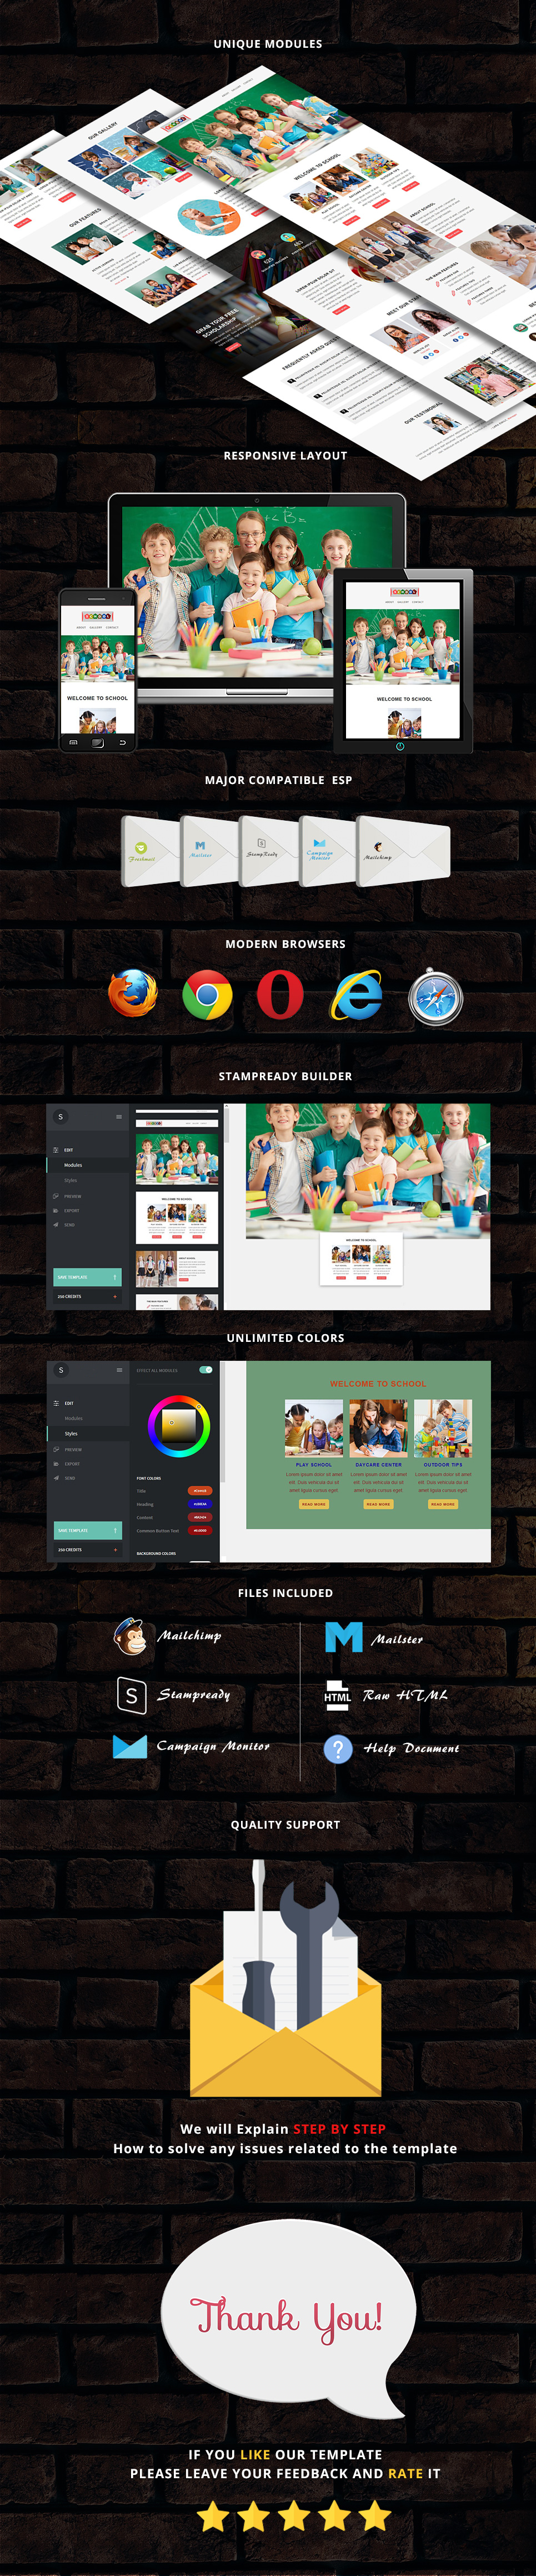 School - Responsive Email Template + Stampready Builder